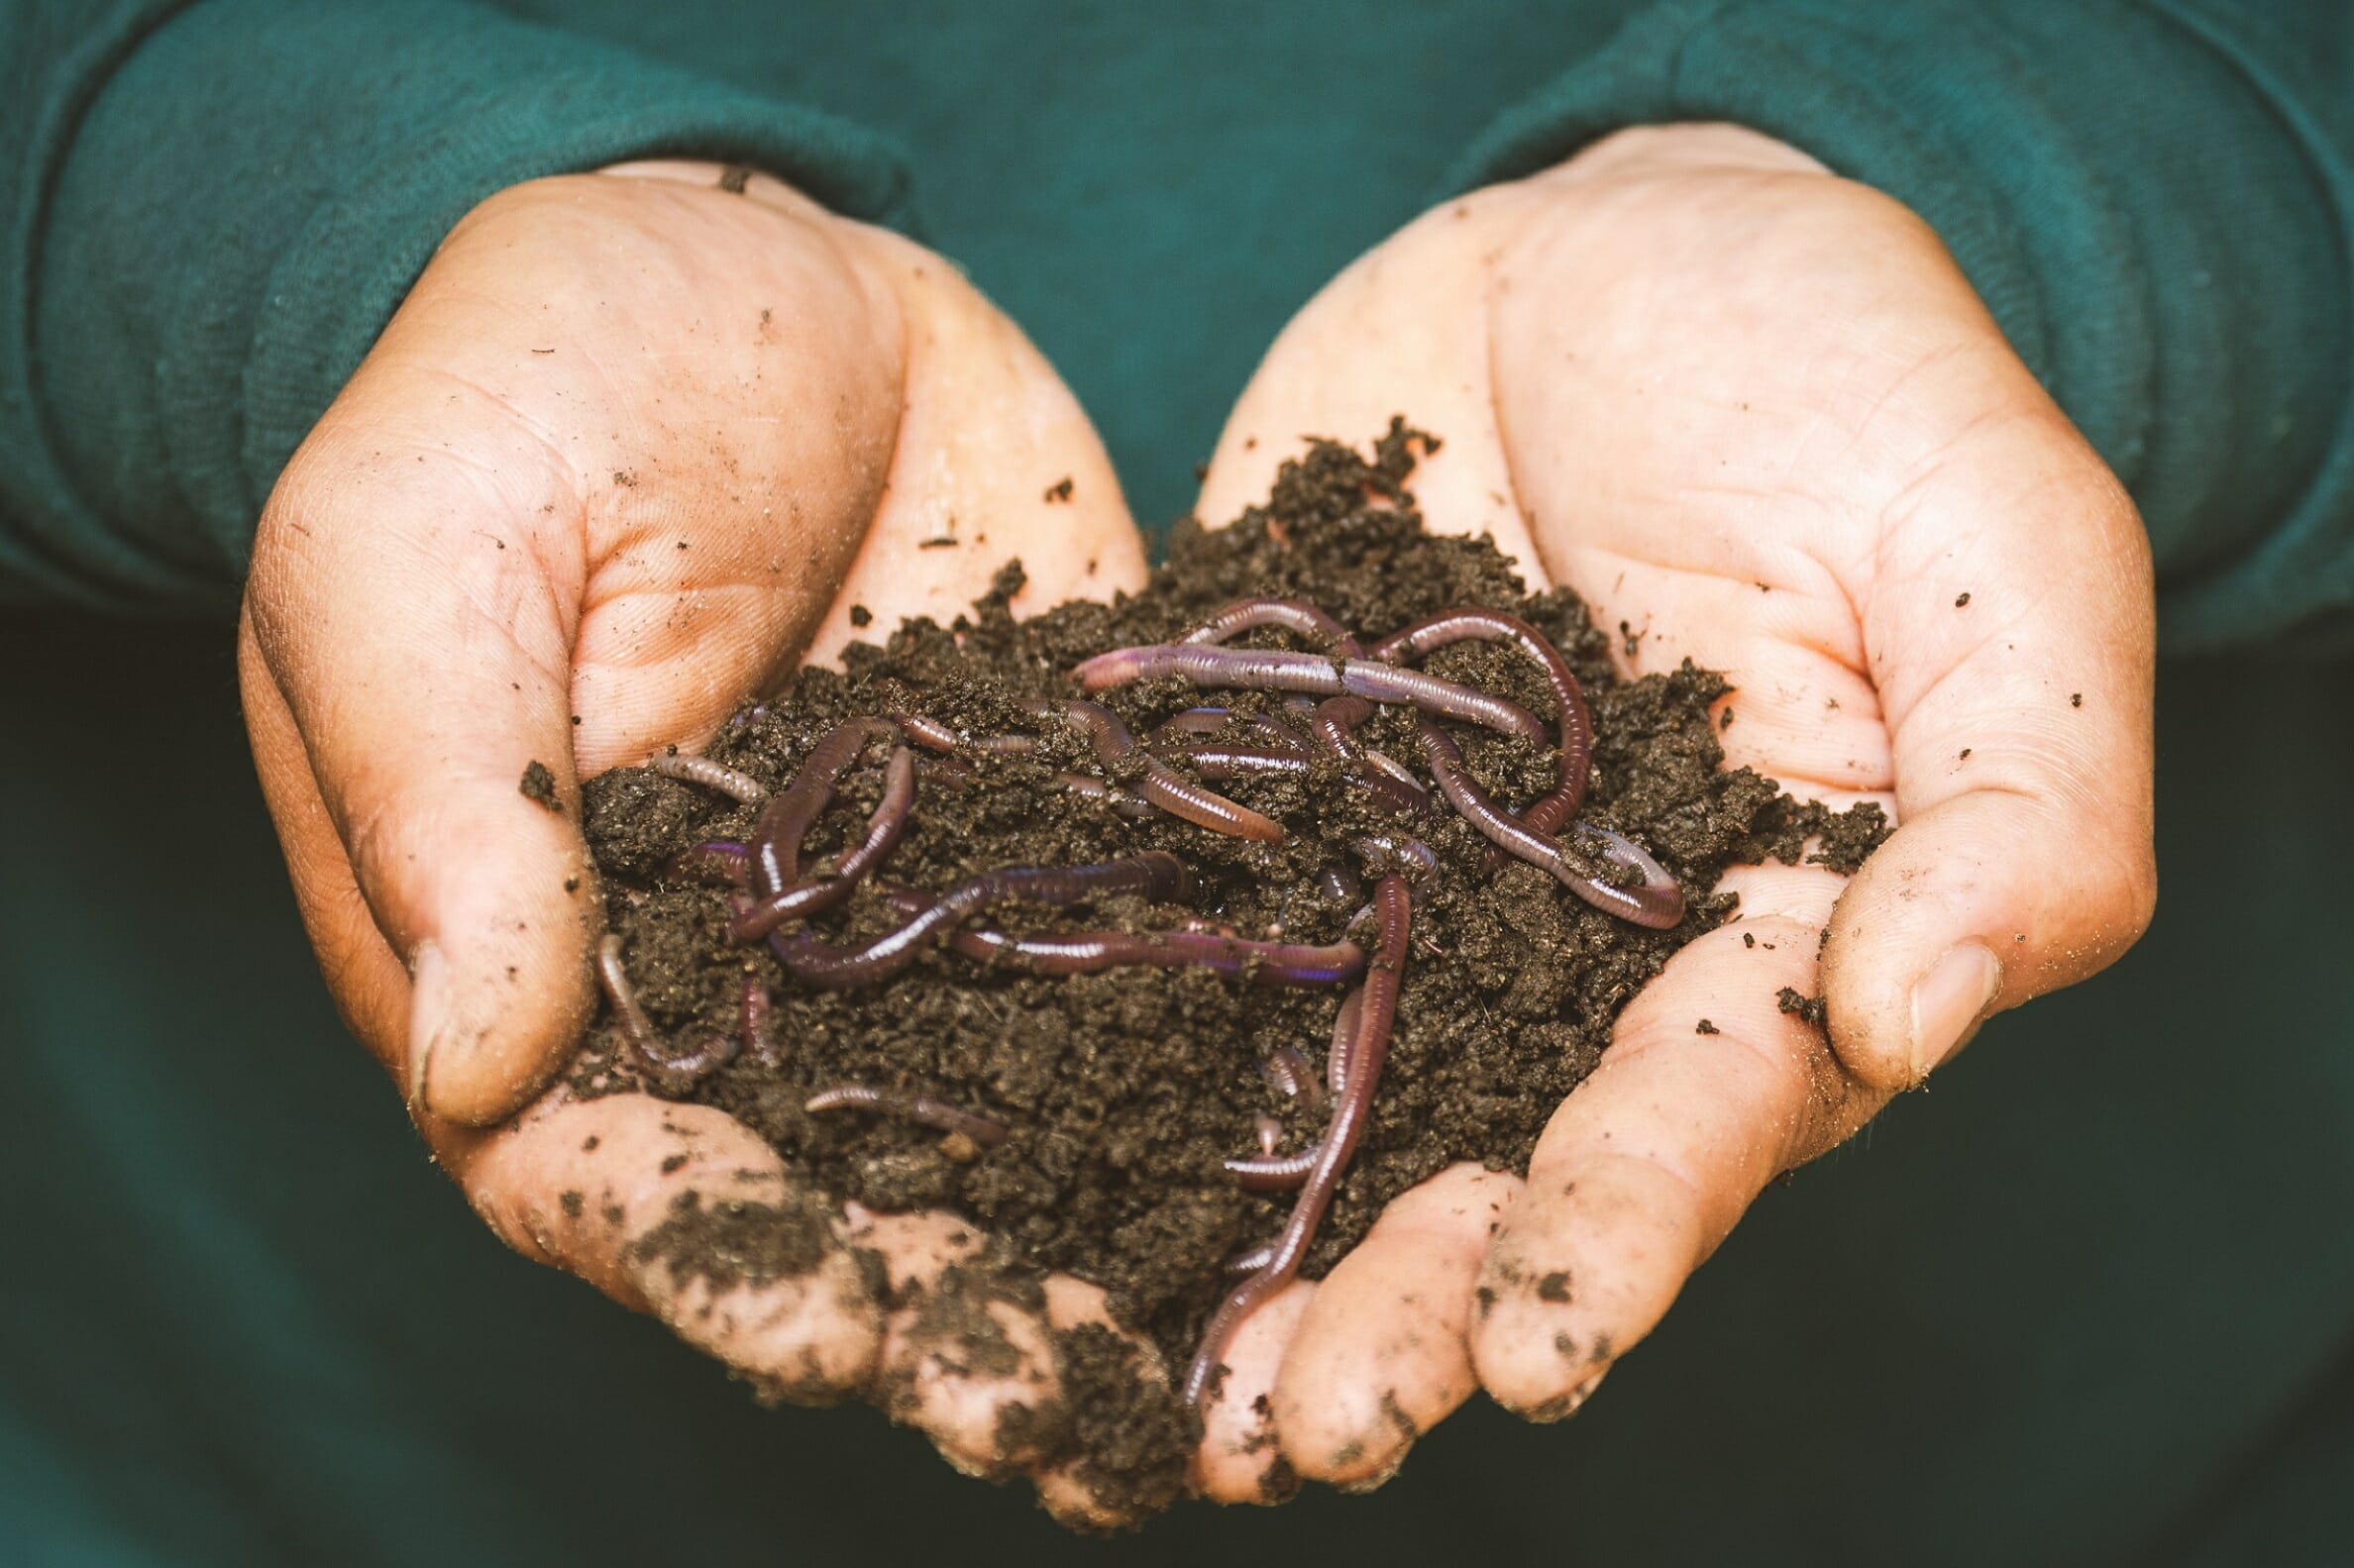 Earthworms and Redworms Compost Bin Live Together